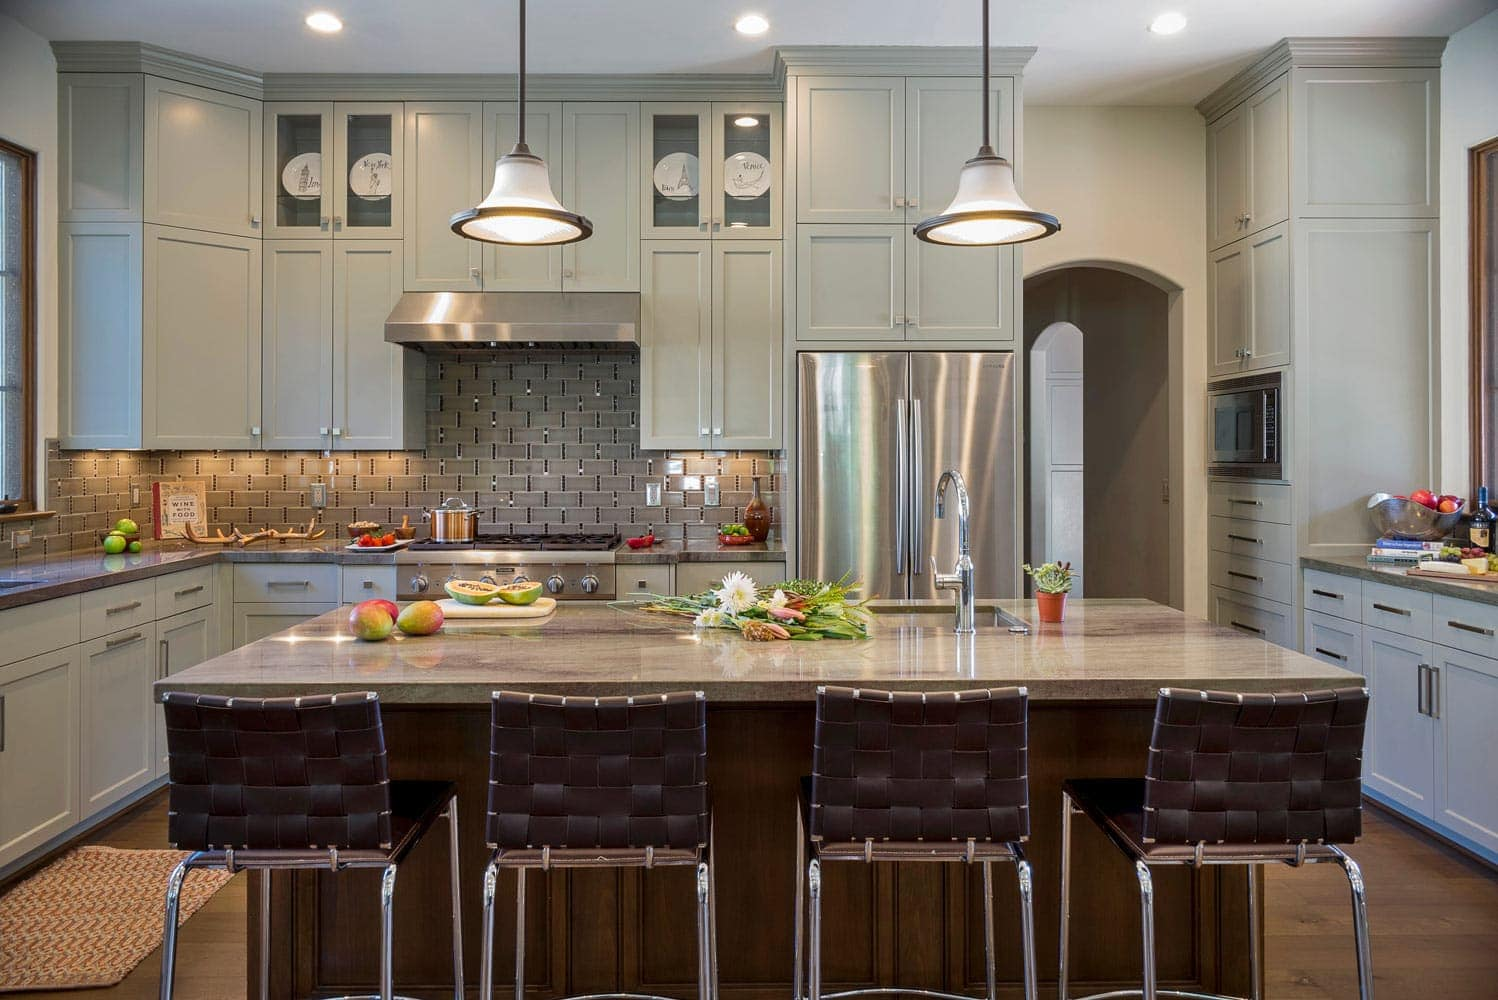 Kitchen interior design of a La Cañada Blvd house